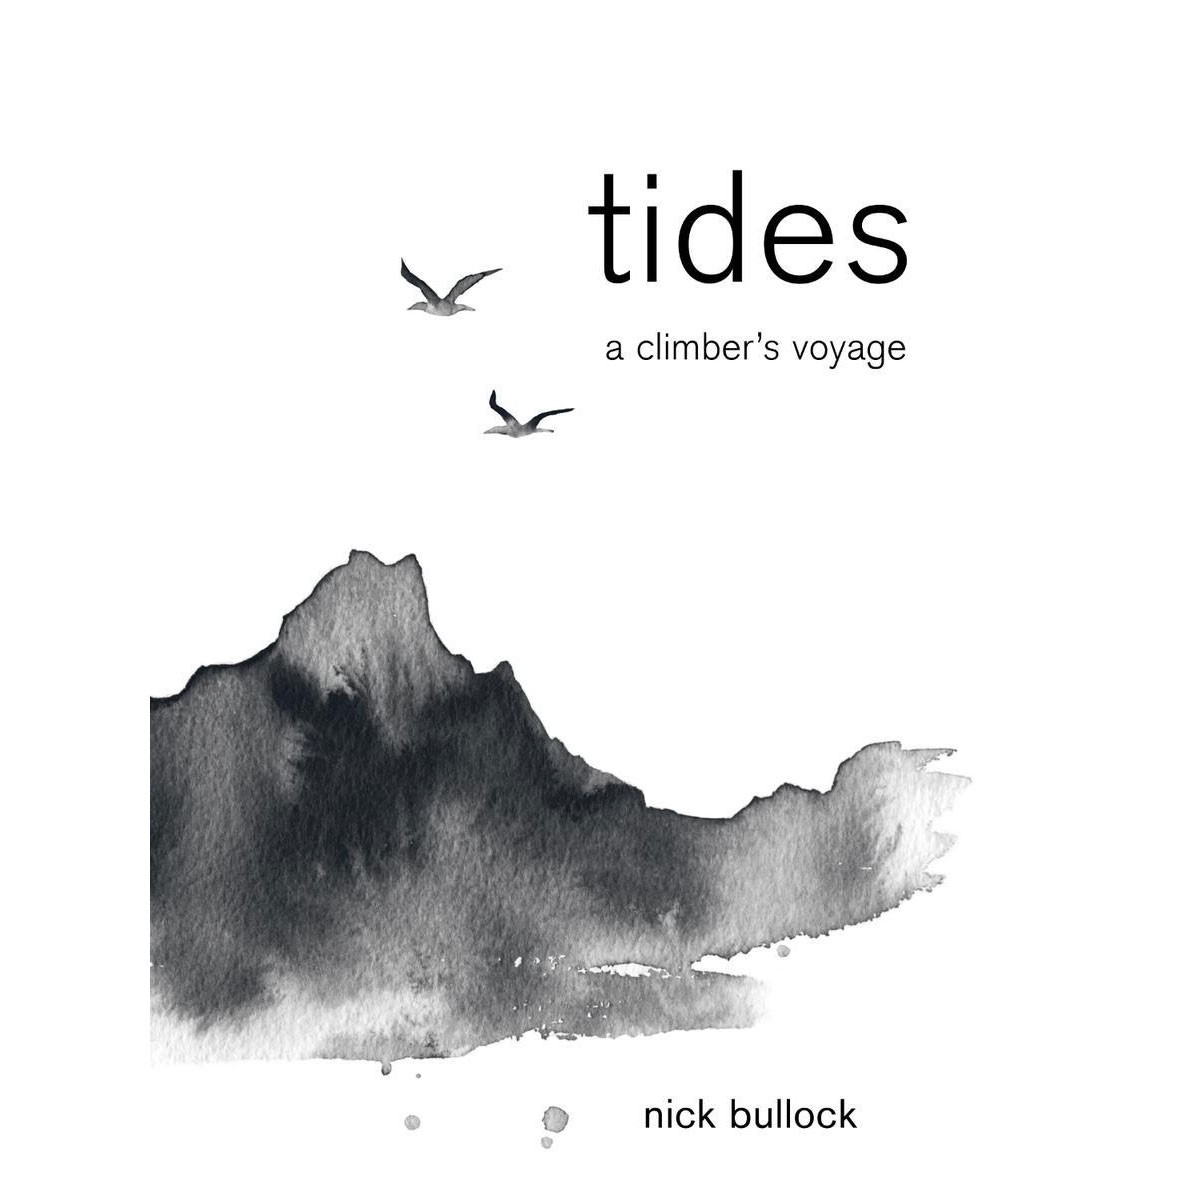 Tides - A Climber's Voyage: Nick Bullock